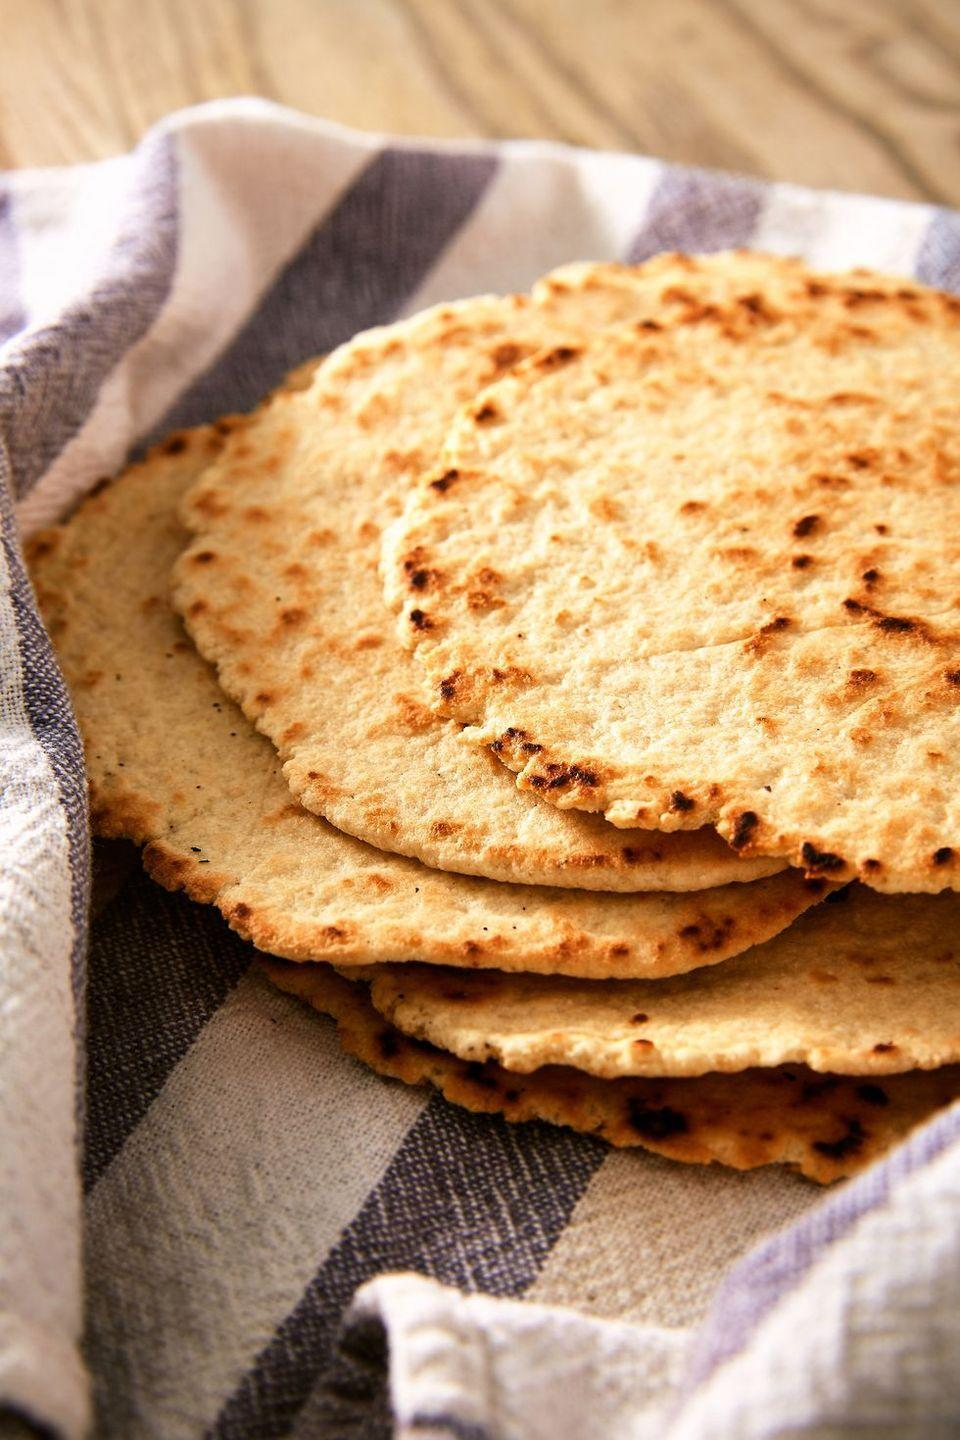 "<p>These tortillas are sturdy enough to hold up to whatever you fill them with, and they're ready in under 30 minutes. Bring on Taco Tuesday!</p><p>Get the <a href=""https://www.delish.com/uk/cooking/recipes/a31952619/keto-tortilla-recipe/"" rel=""nofollow noopener"" target=""_blank"" data-ylk=""slk:Keto Tortillas"" class=""link rapid-noclick-resp"">Keto Tortillas</a> recipe.</p>"